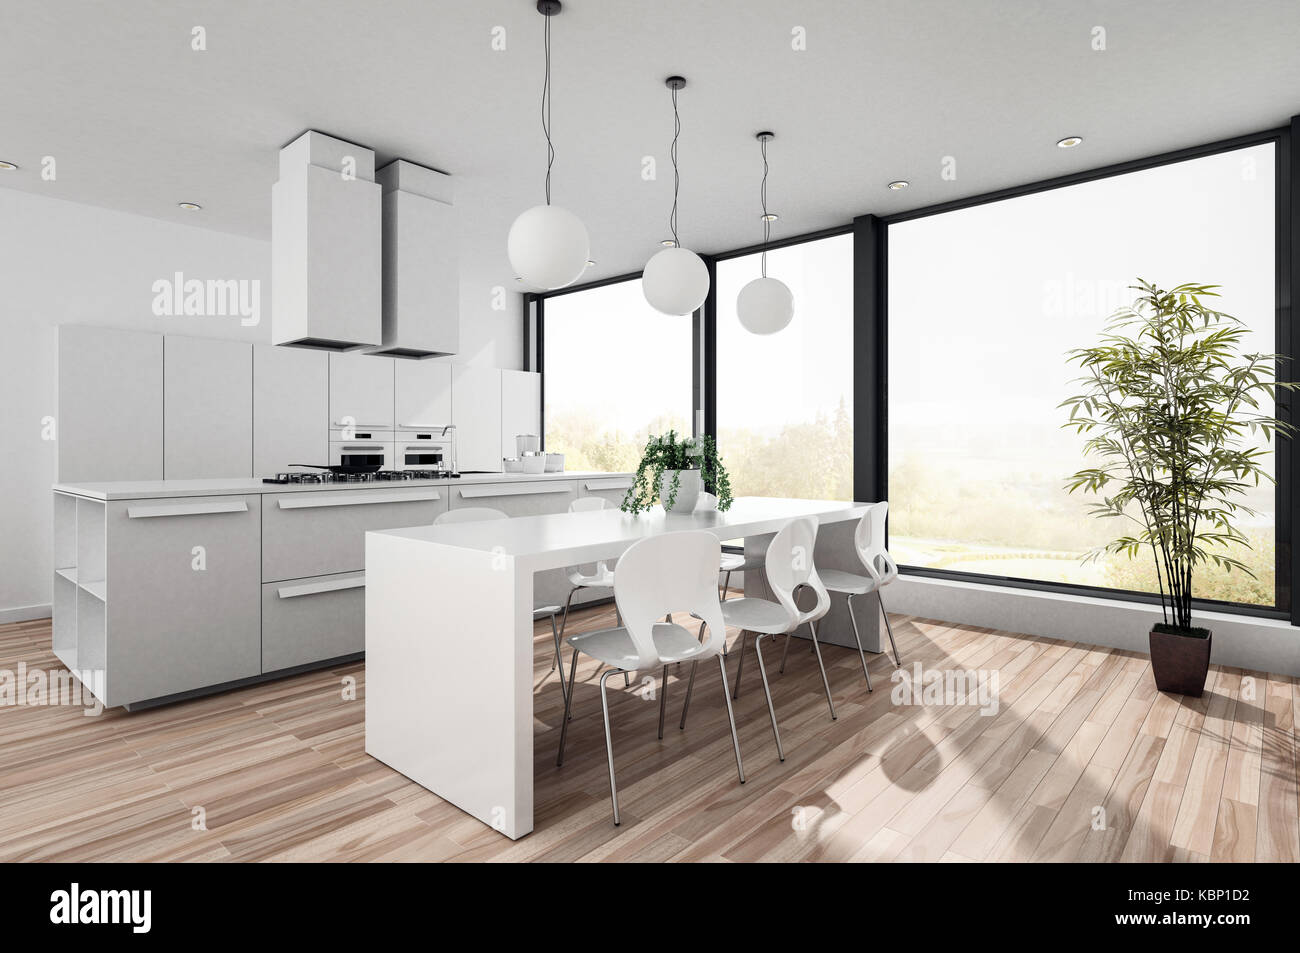 Modern White Open Plan Kitchenette With Fitted Cabinets And Appliances And  A Contemporary Dining Table And Chairs In Front Of Large Bright View Window